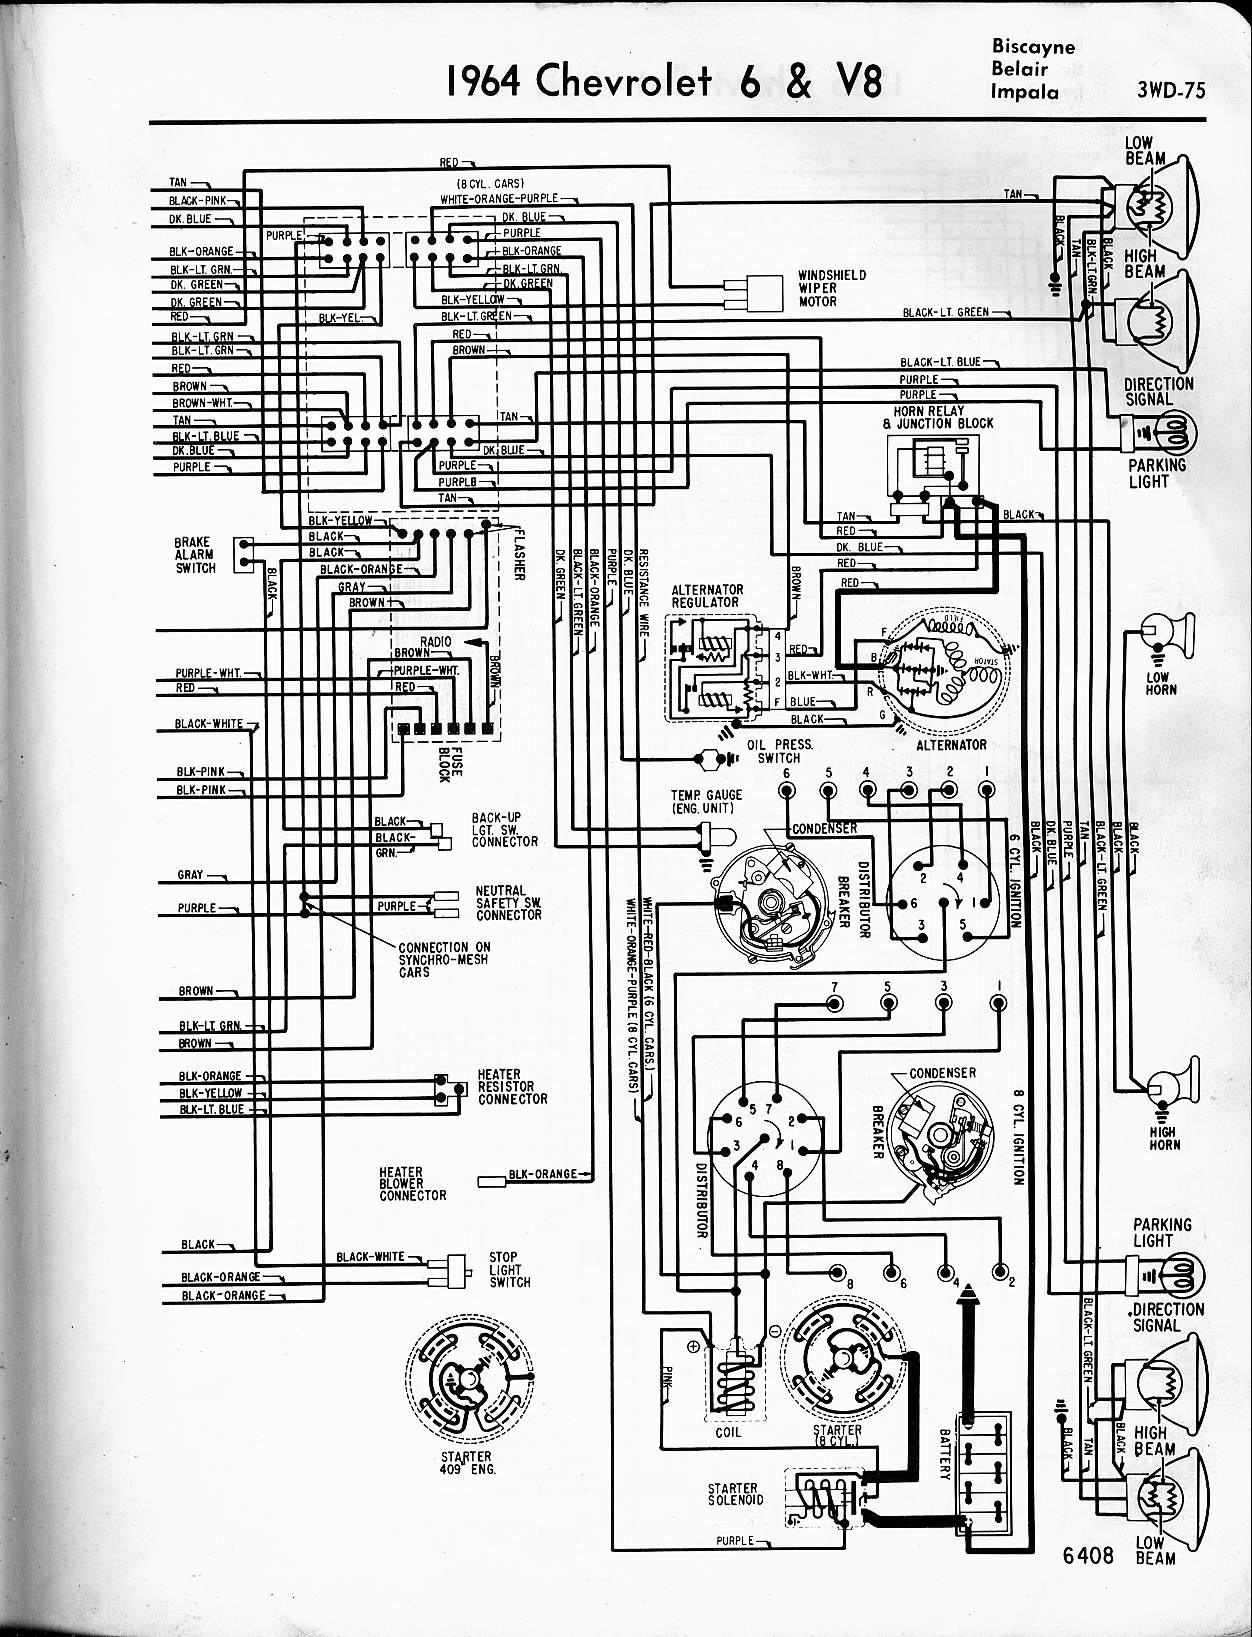 new 1964 corvette radio wiring trusted wiring diagram u2022 rh soulmatestyle co 78 corvette starter wiring diagram 78 corvette radio wiring diagram